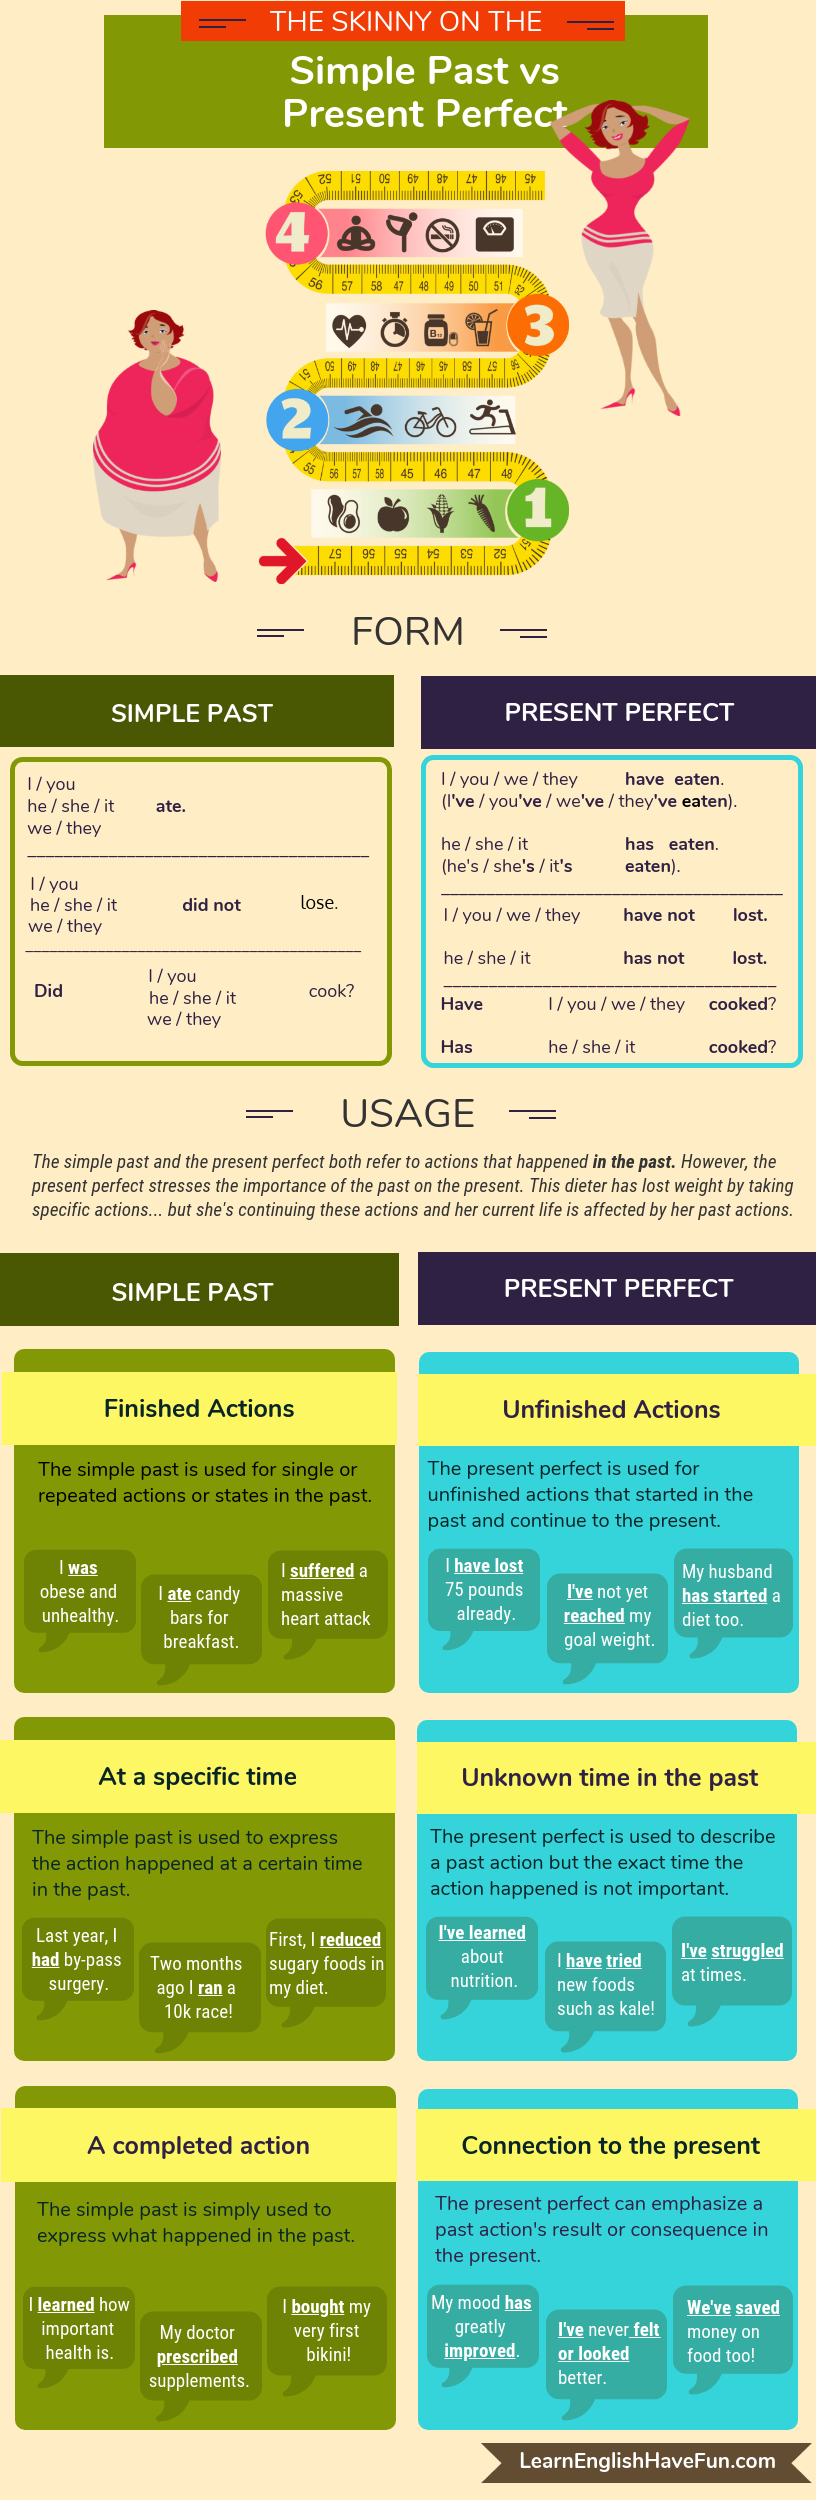 Present perfect vs past simple info-graphic.